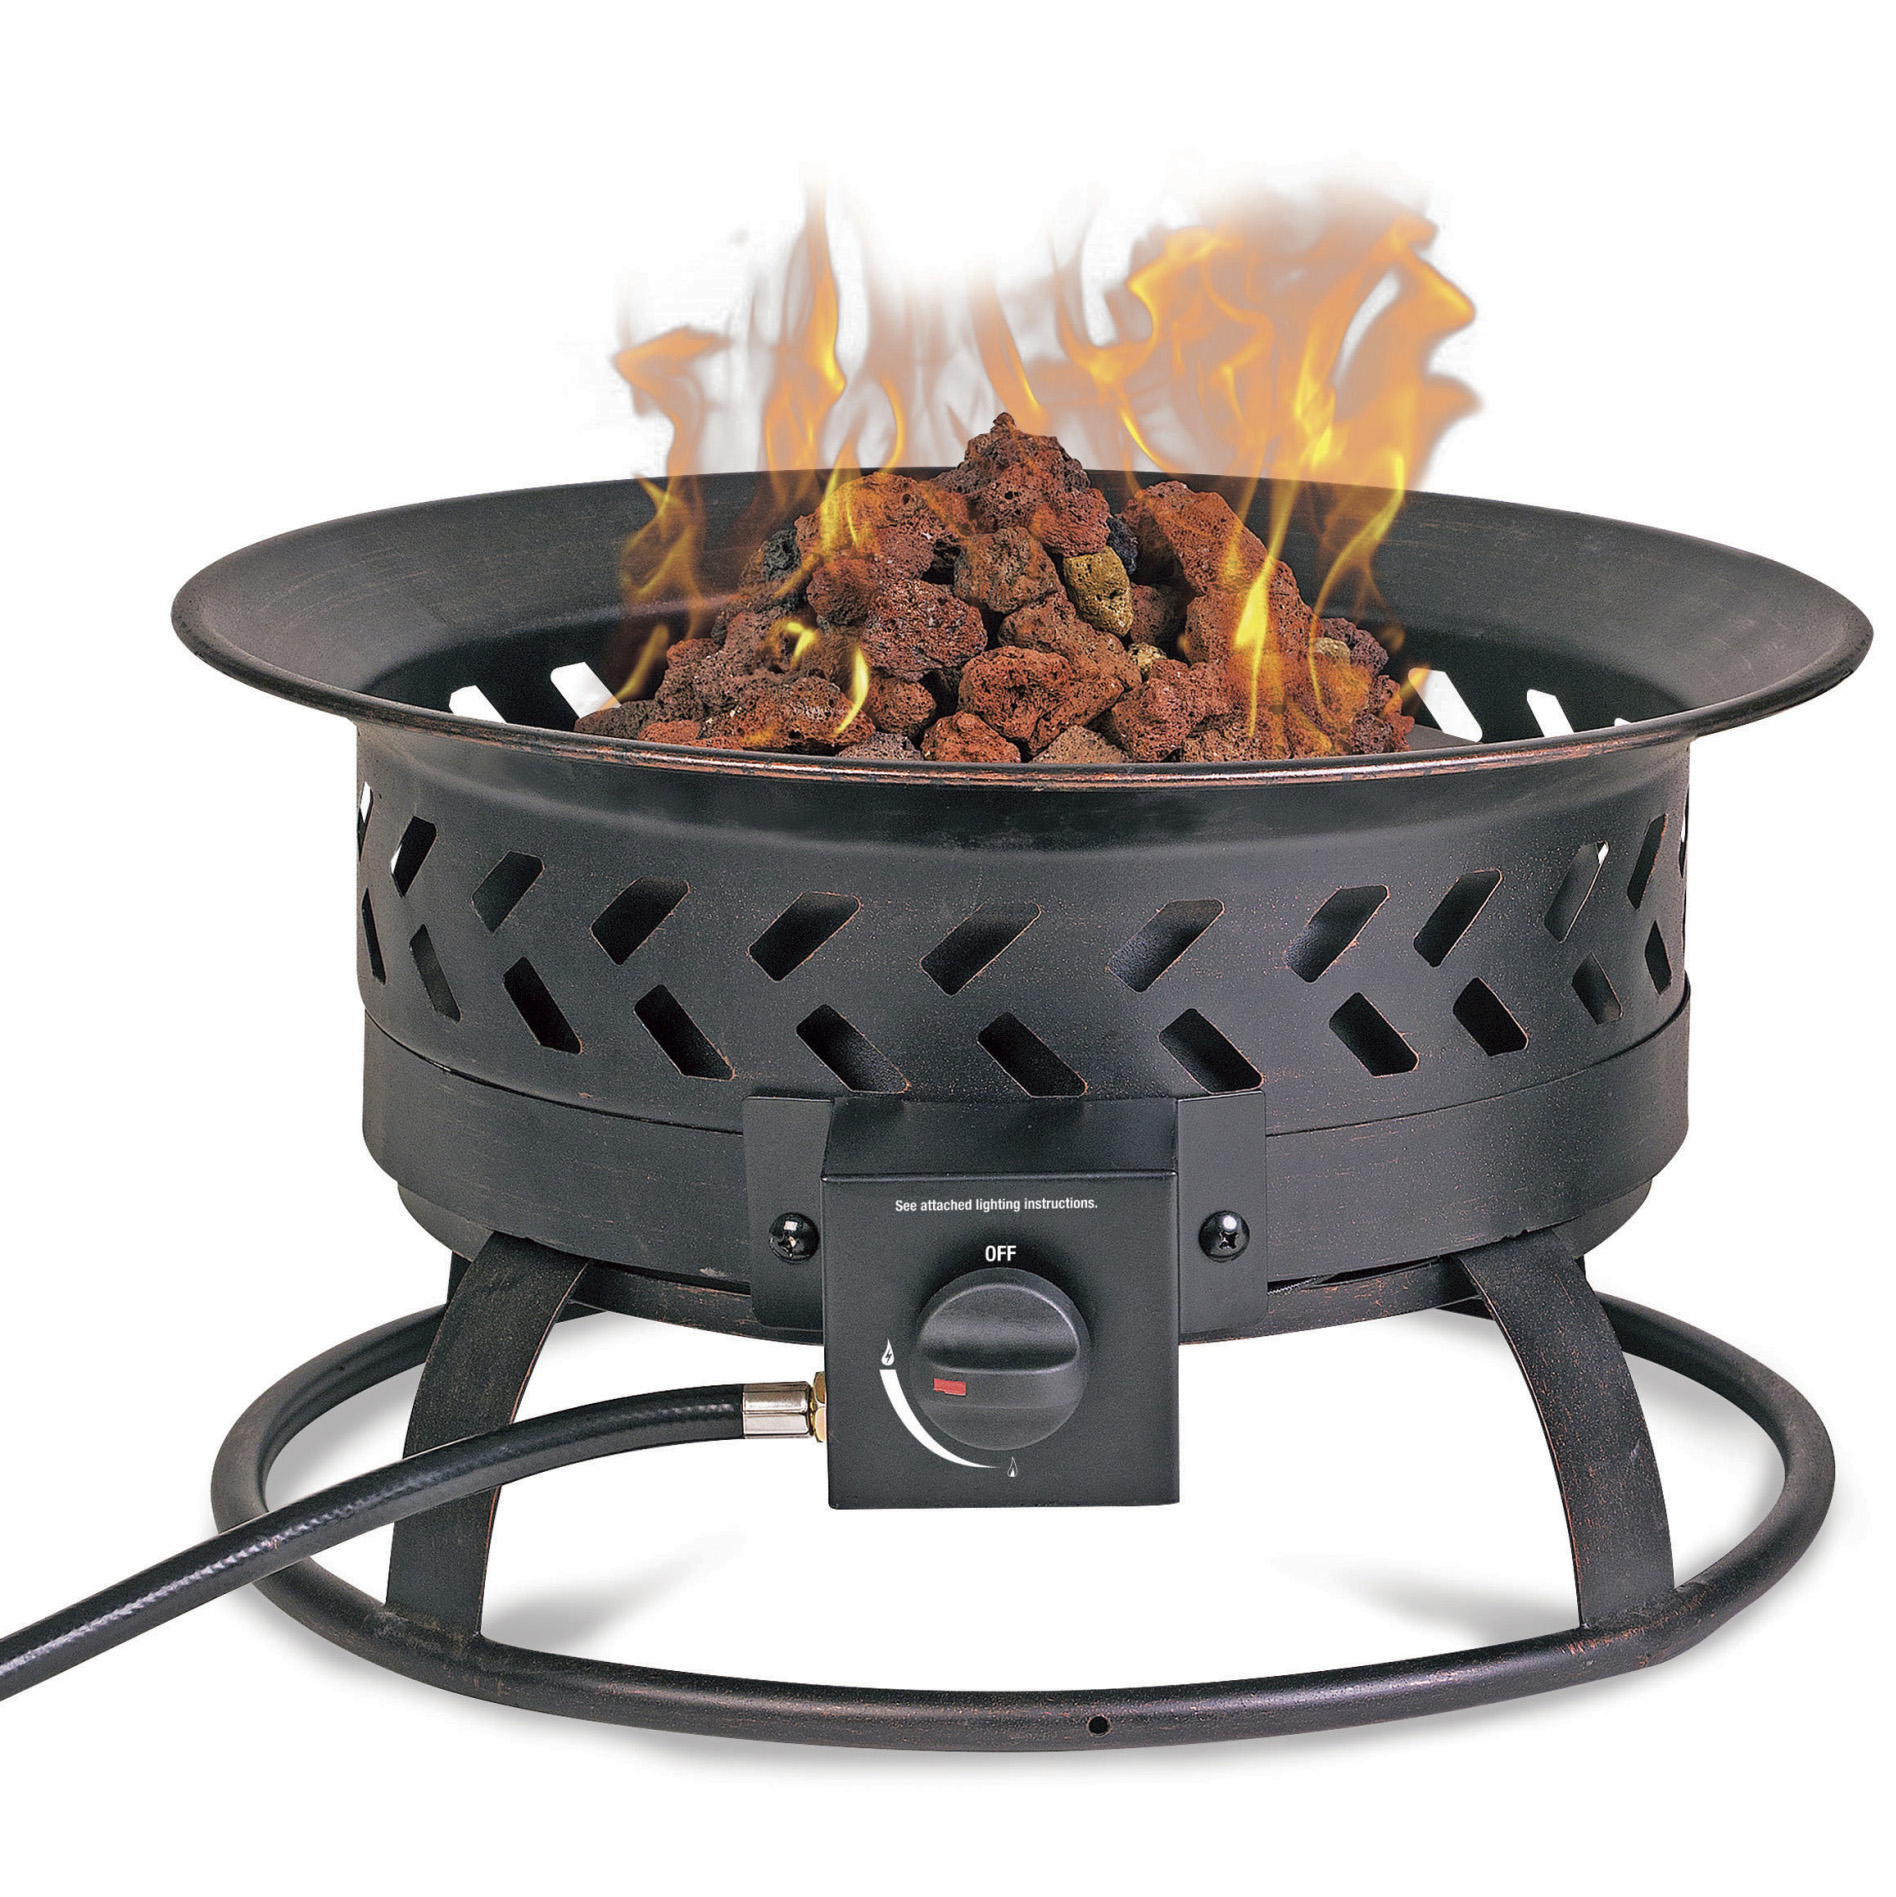 Chef Master GAD16600S fire pit, outdoor